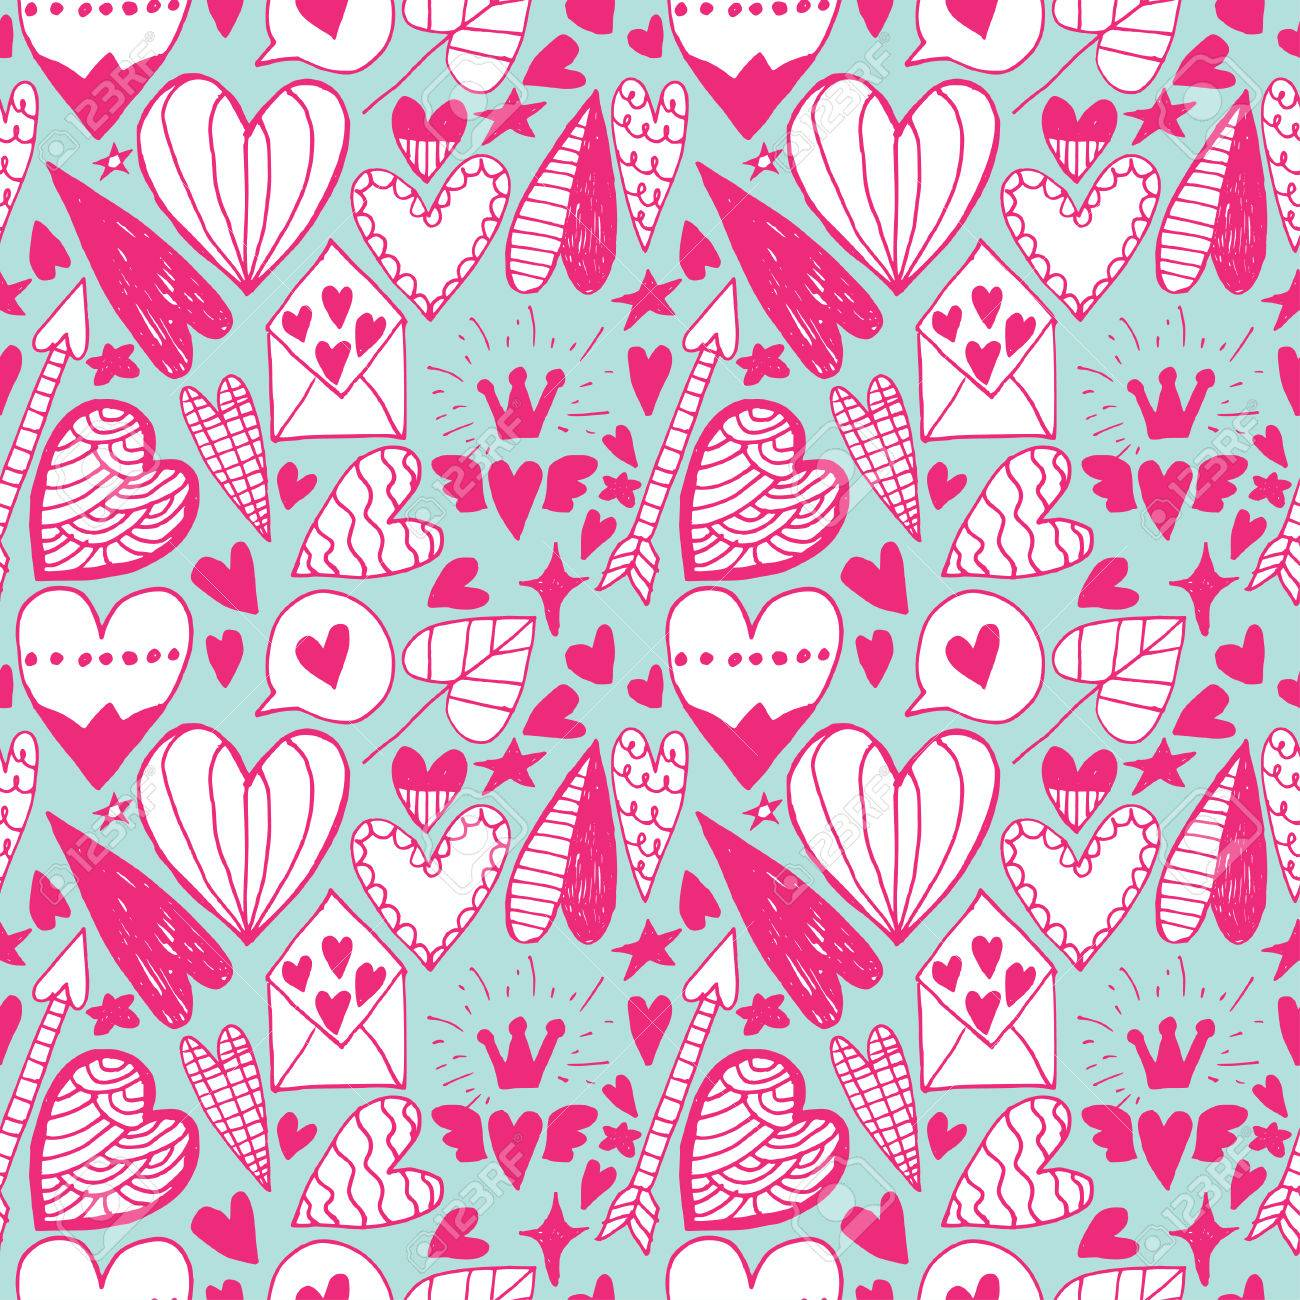 Hand Drawn Doodle Heart Seamless Pattern Saint Valentine Day Royalty Free Cliparts Vectors And Stock Illustration Image 44767683